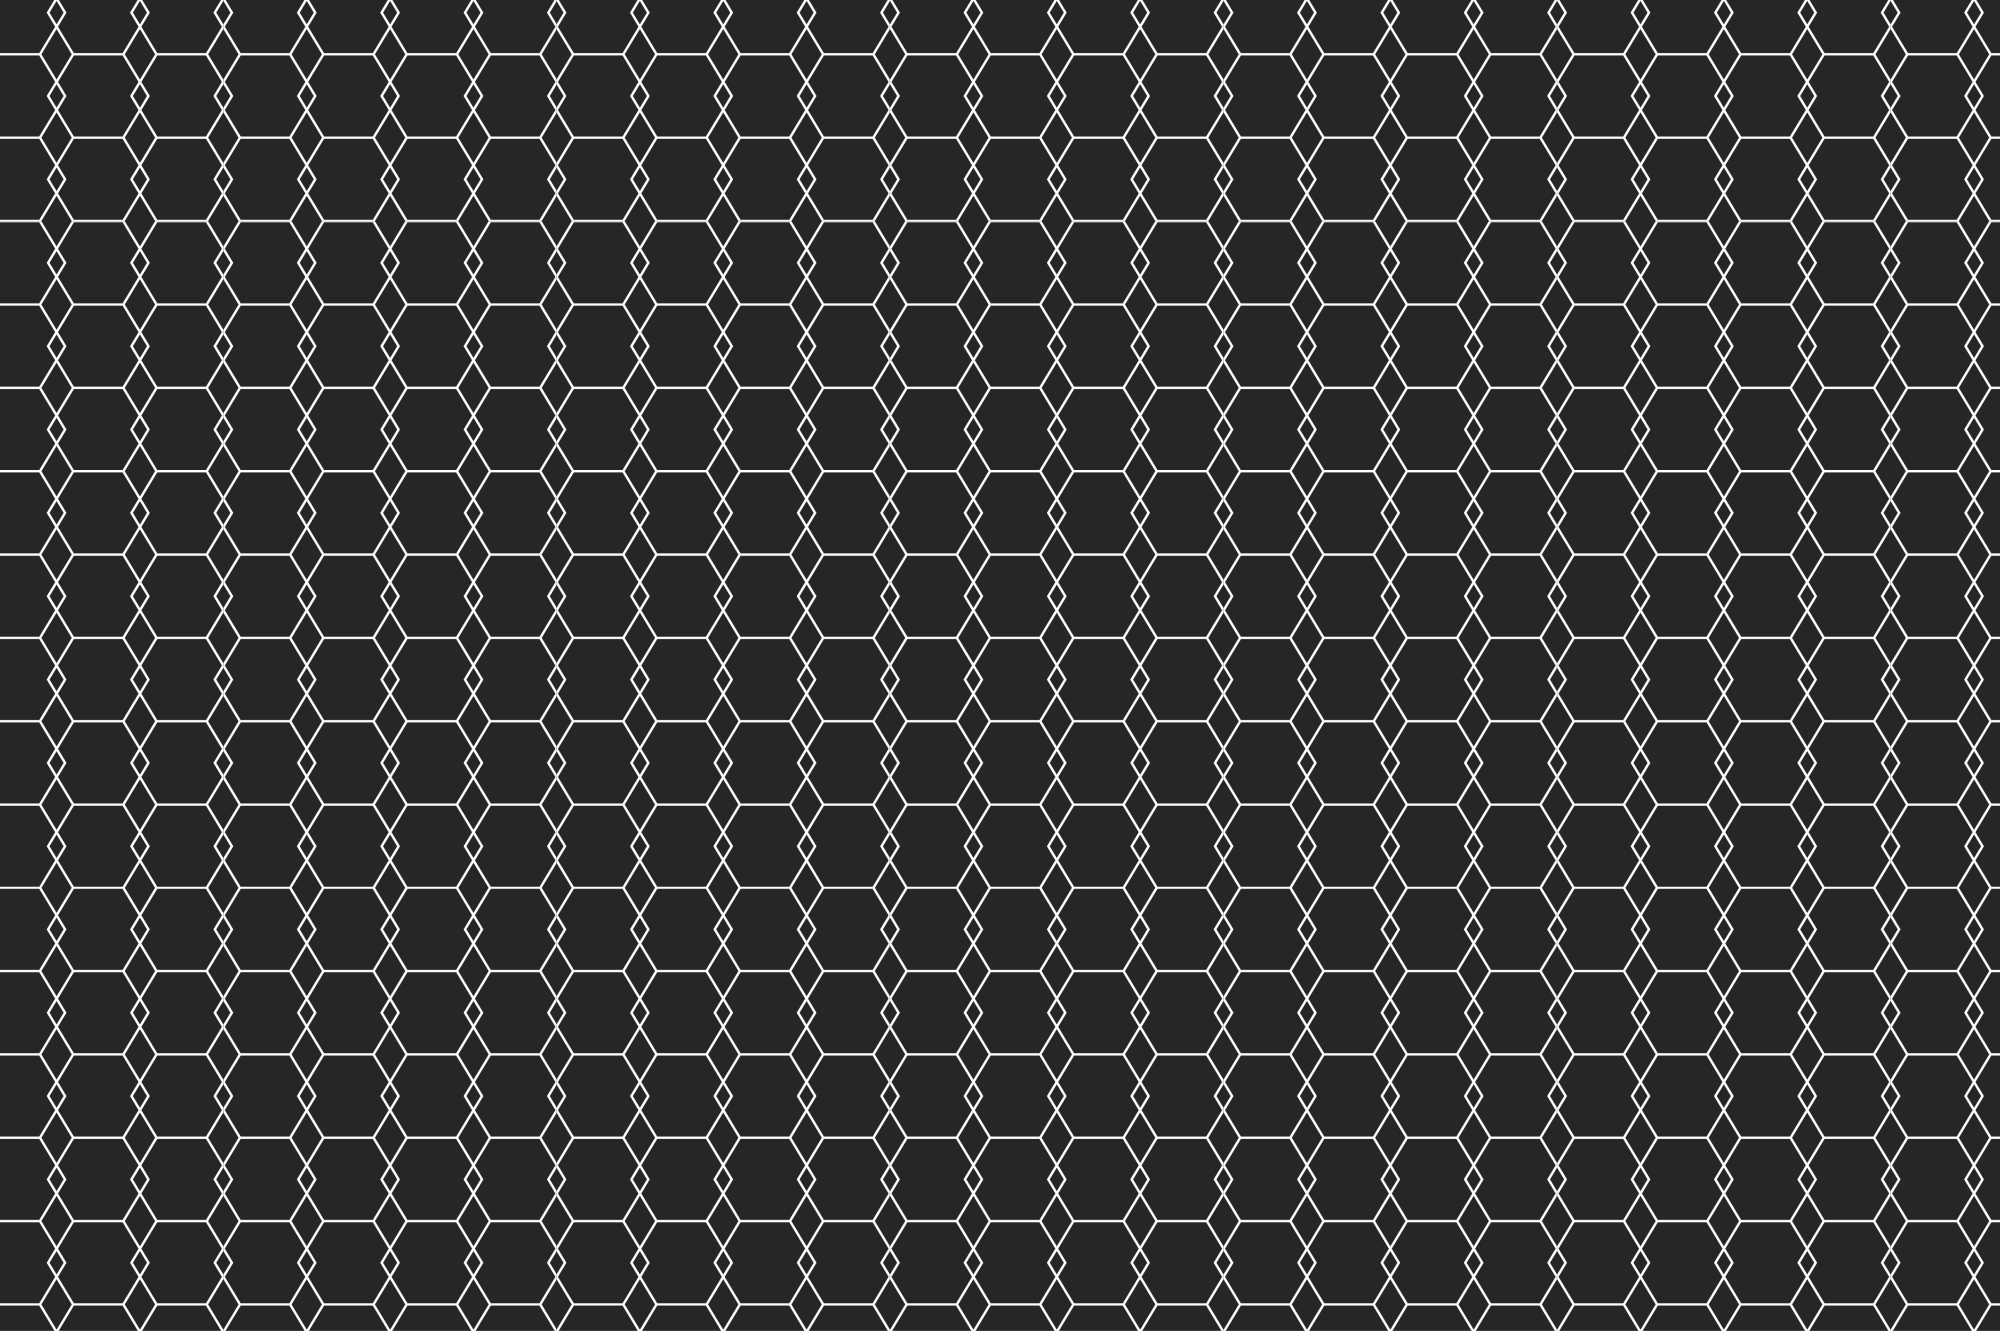 Ornamental seamless patterns. example image 6